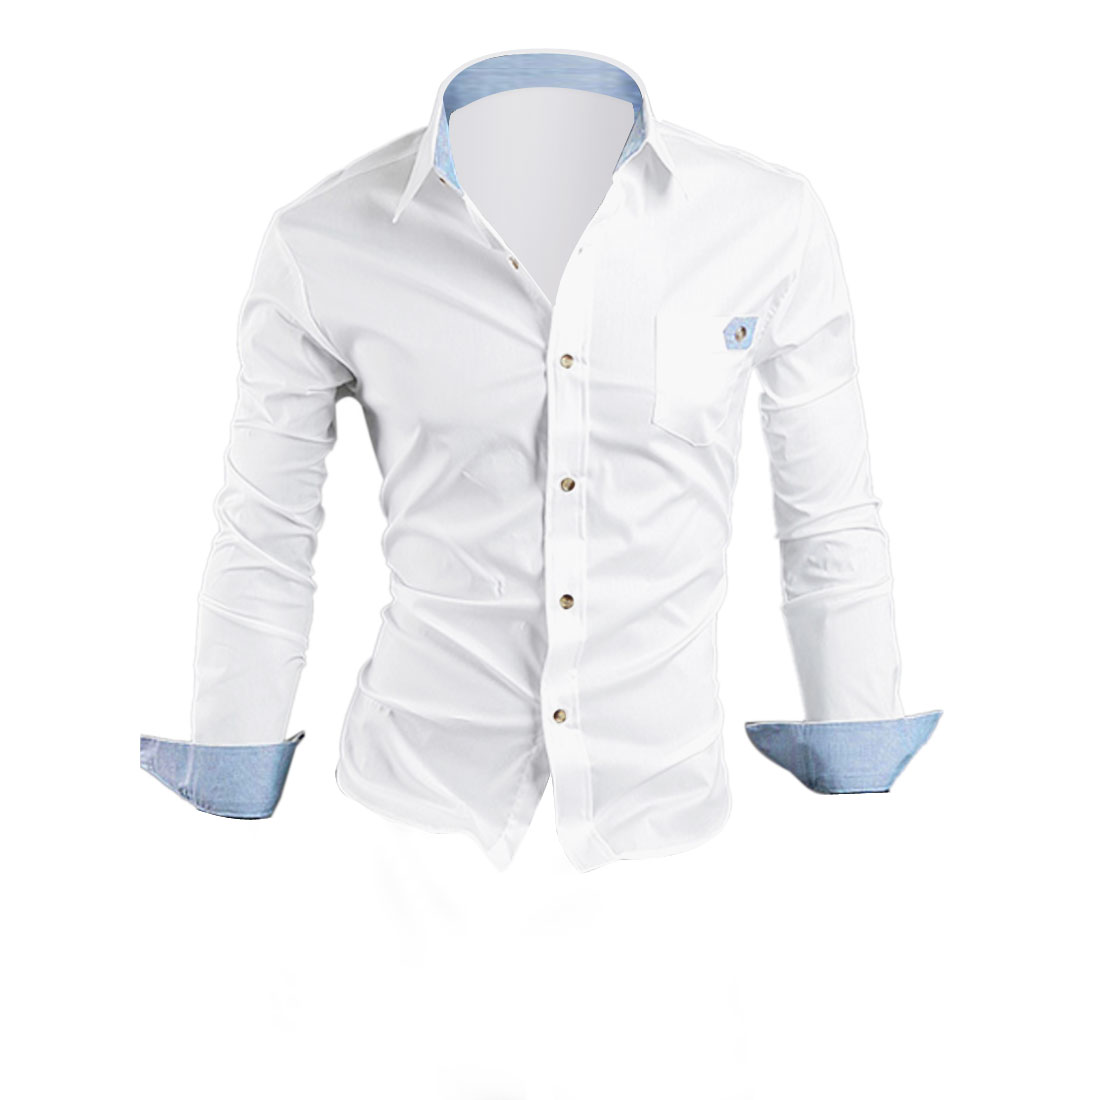 Long Sleeve Button Down One Pocket Round Hem White Shirt Tops For Men M